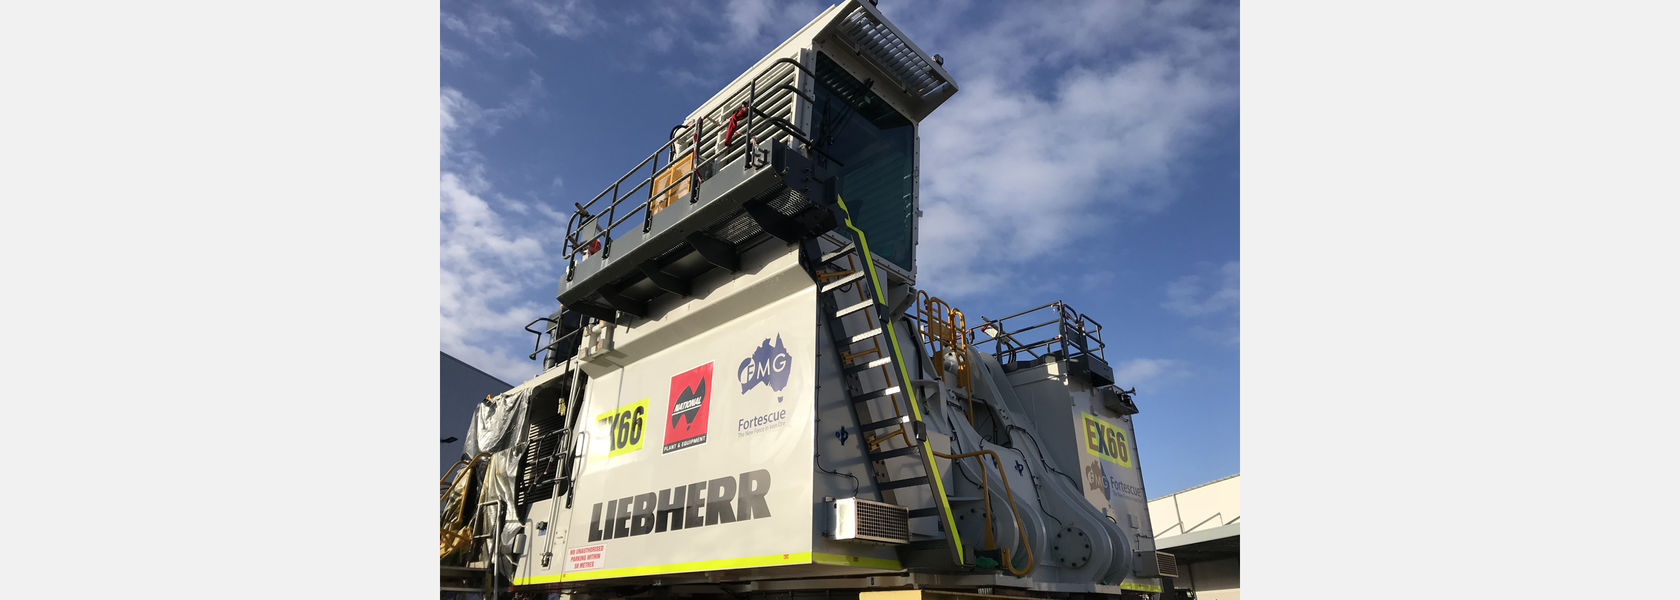 Fortescue Metals Group secure rental of new Liebherr R 996B Excavator